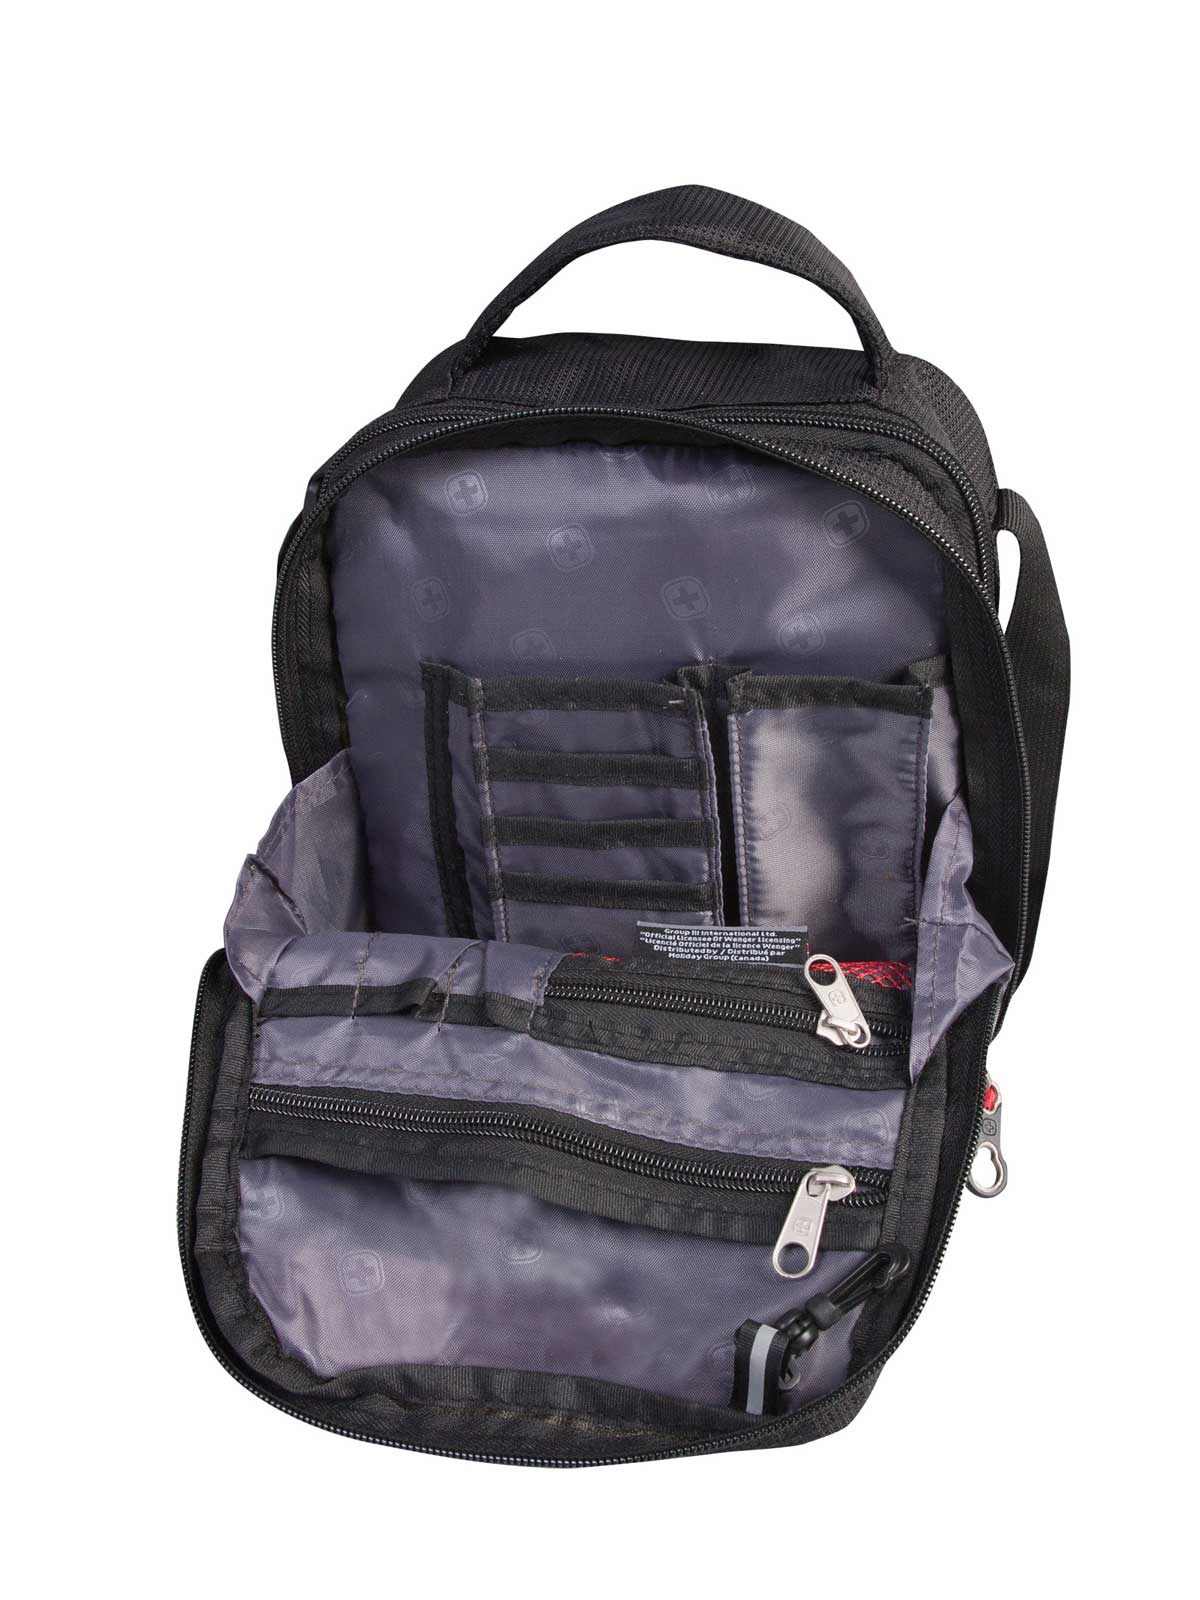 swiss gear vertical boarding bag